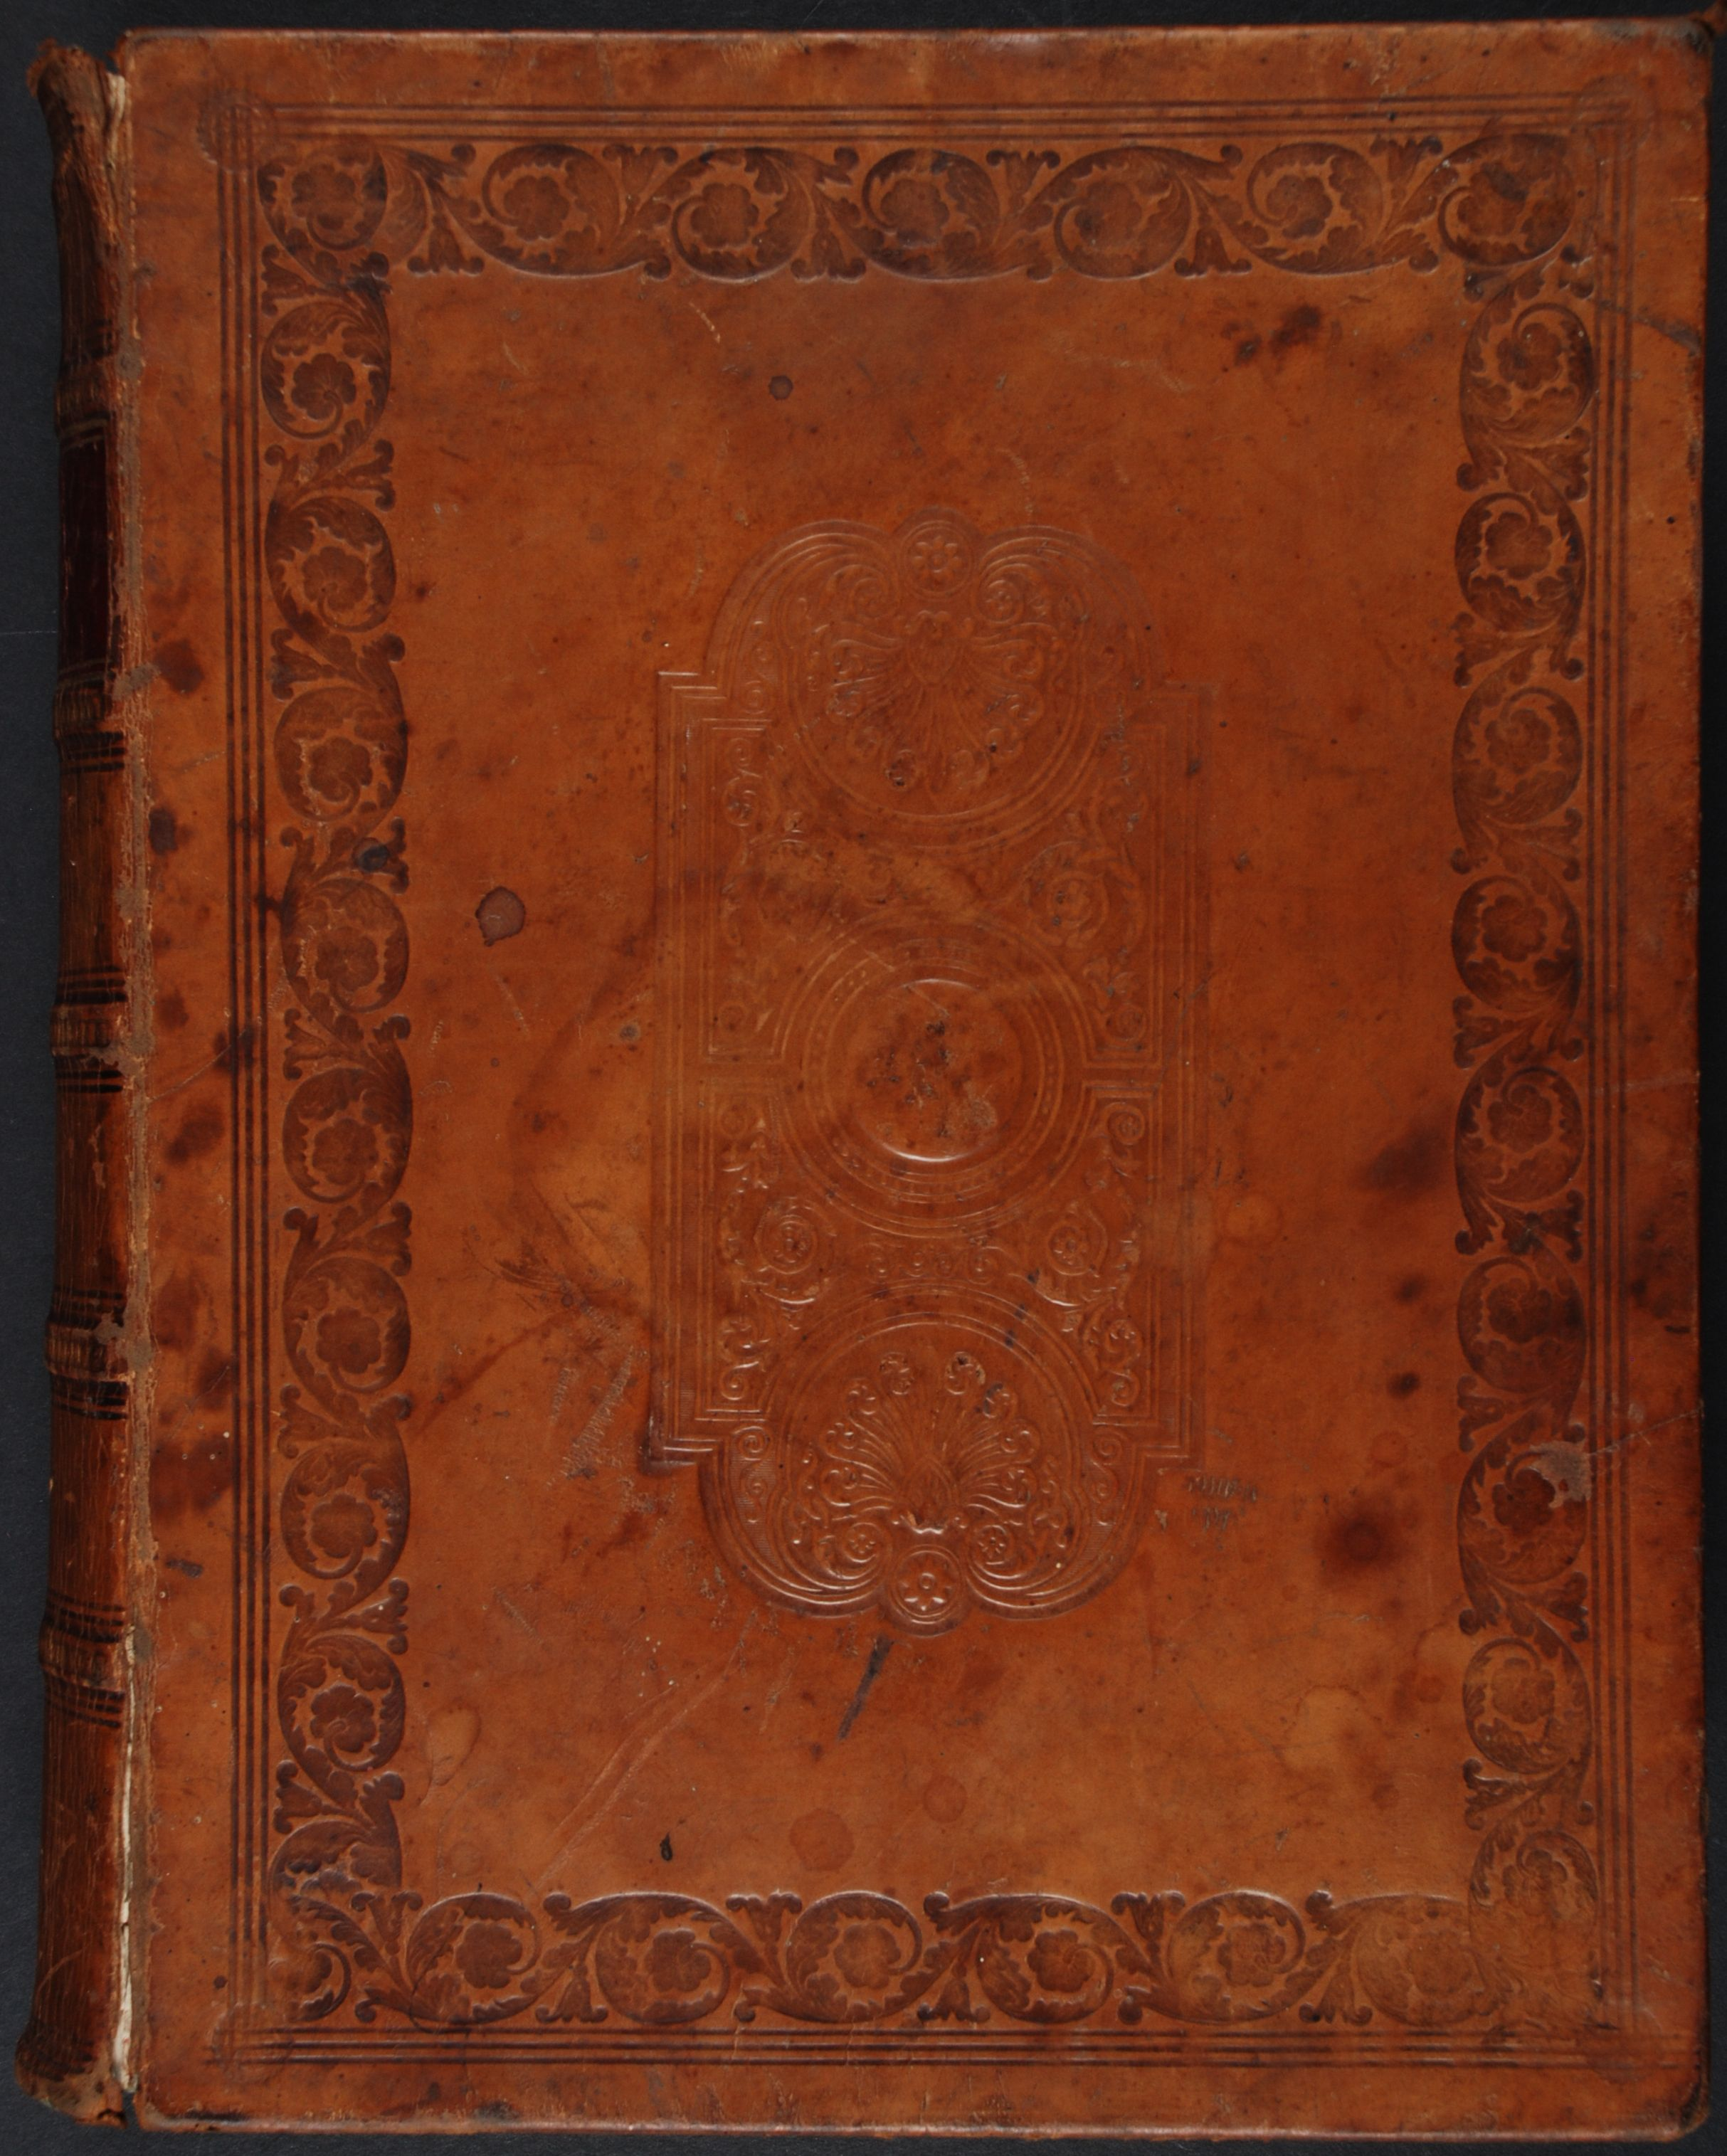 John Fleetwood. The life of our lord and saviour Jesus Christ. Glasgow: William Mackenzie, [187-?]